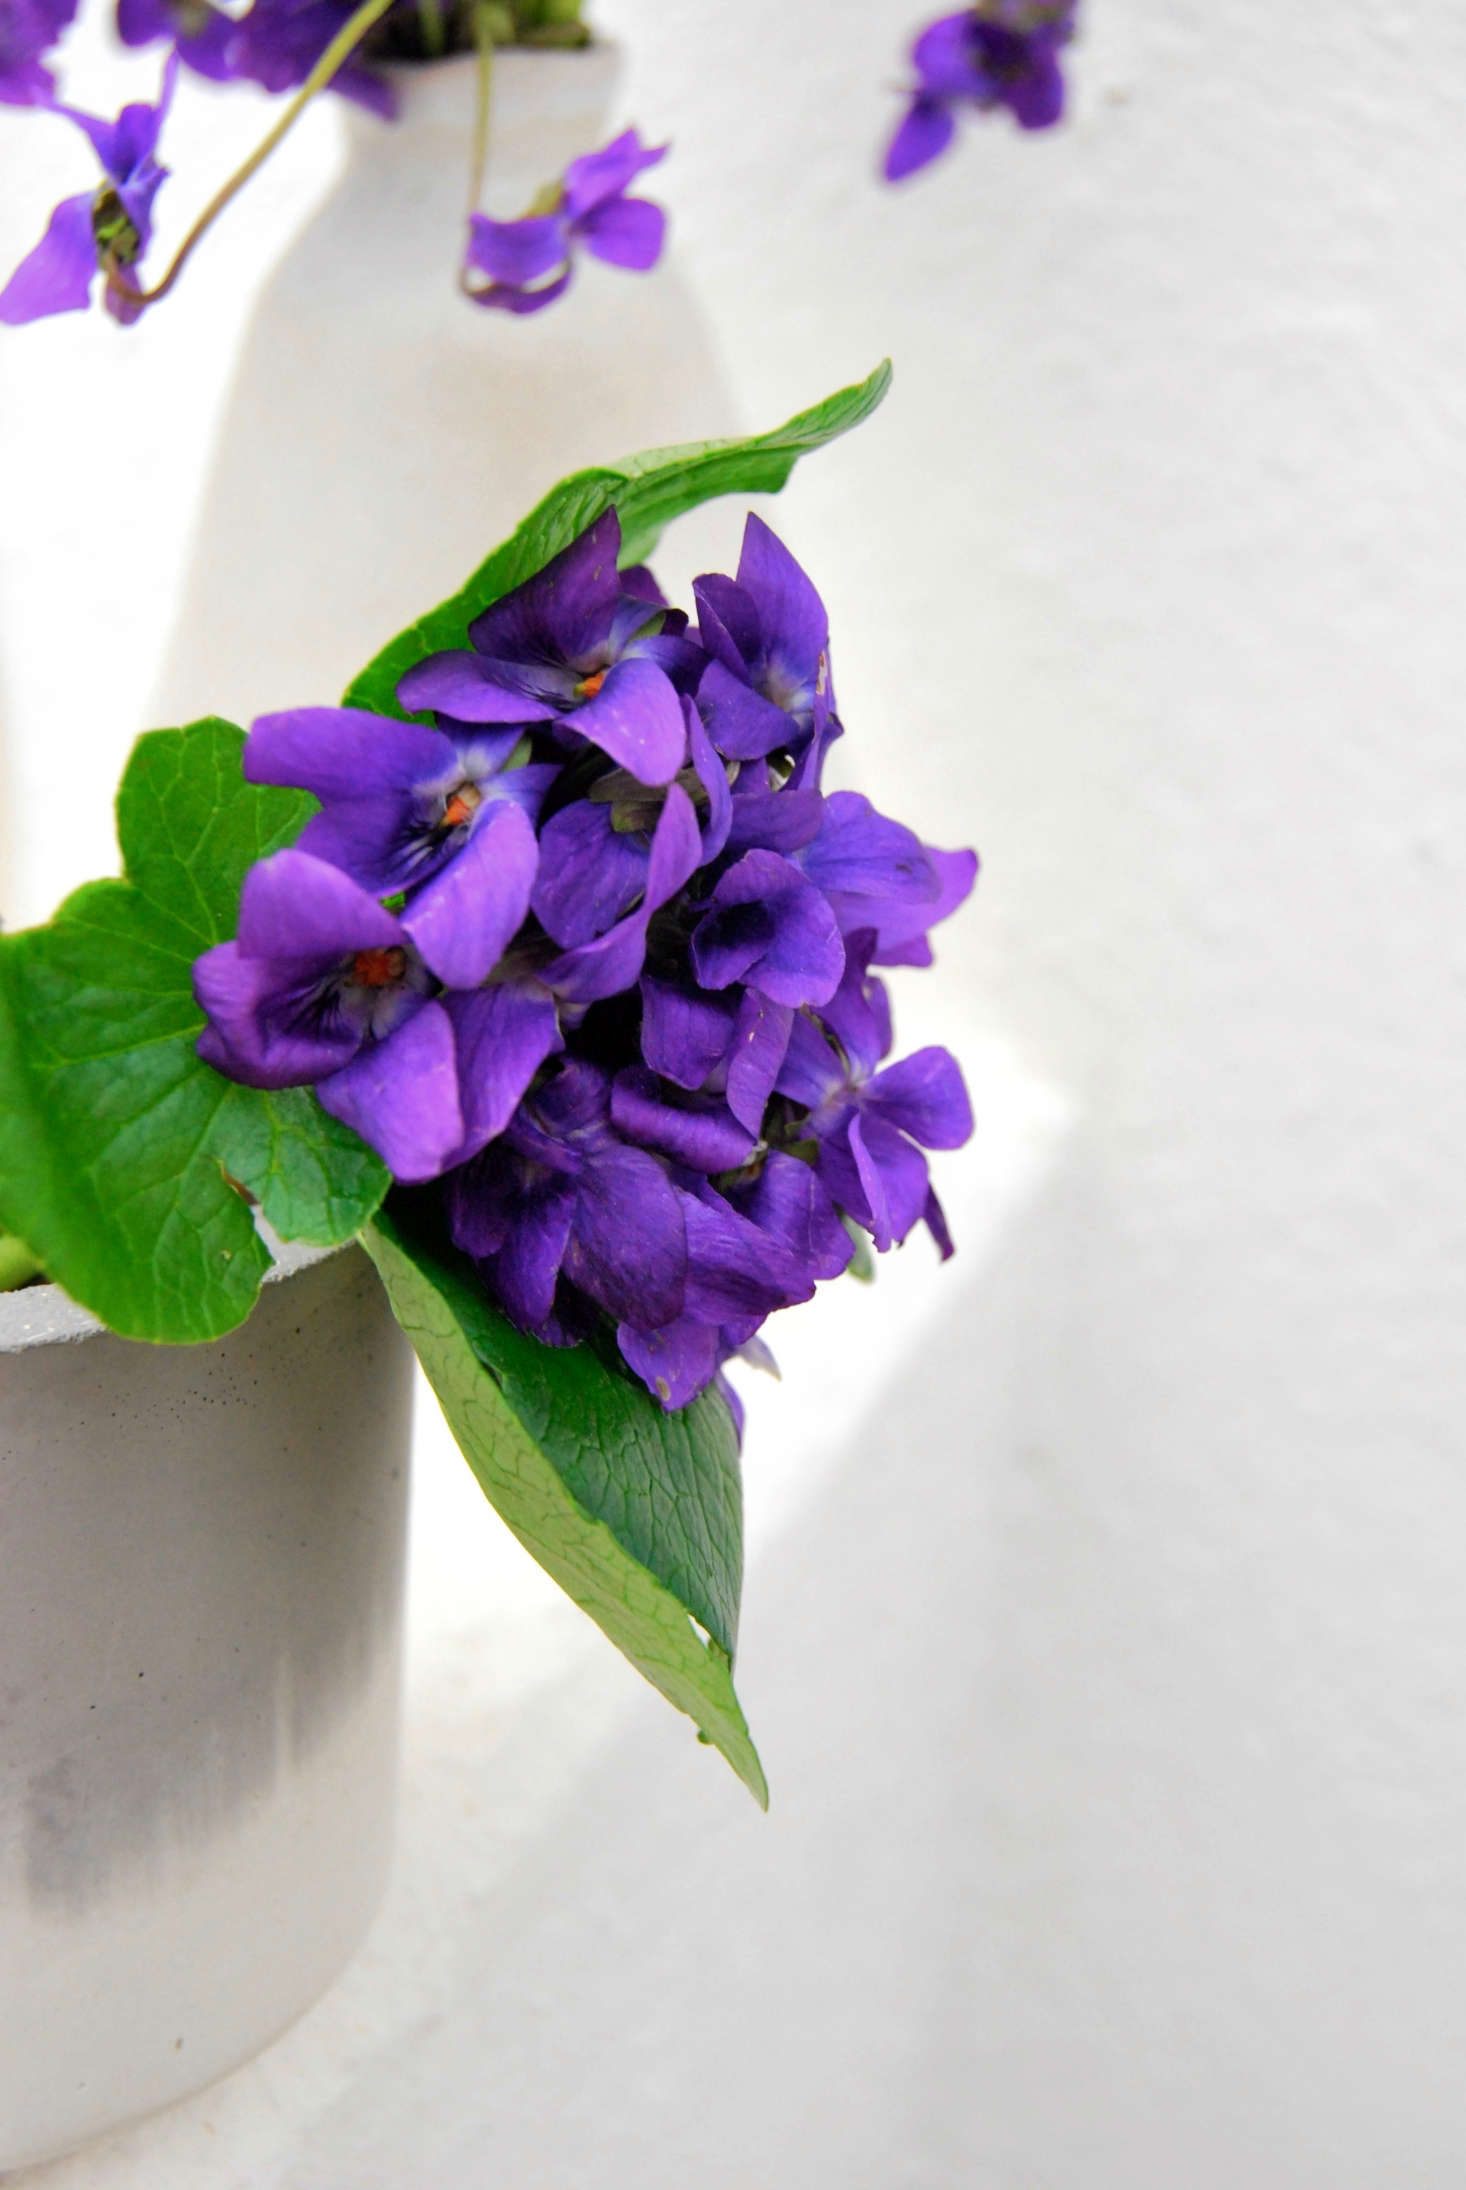 Letting the bouquet hang out over the side, or using a vase where you can see the stems, creates a more modern look for the violets.